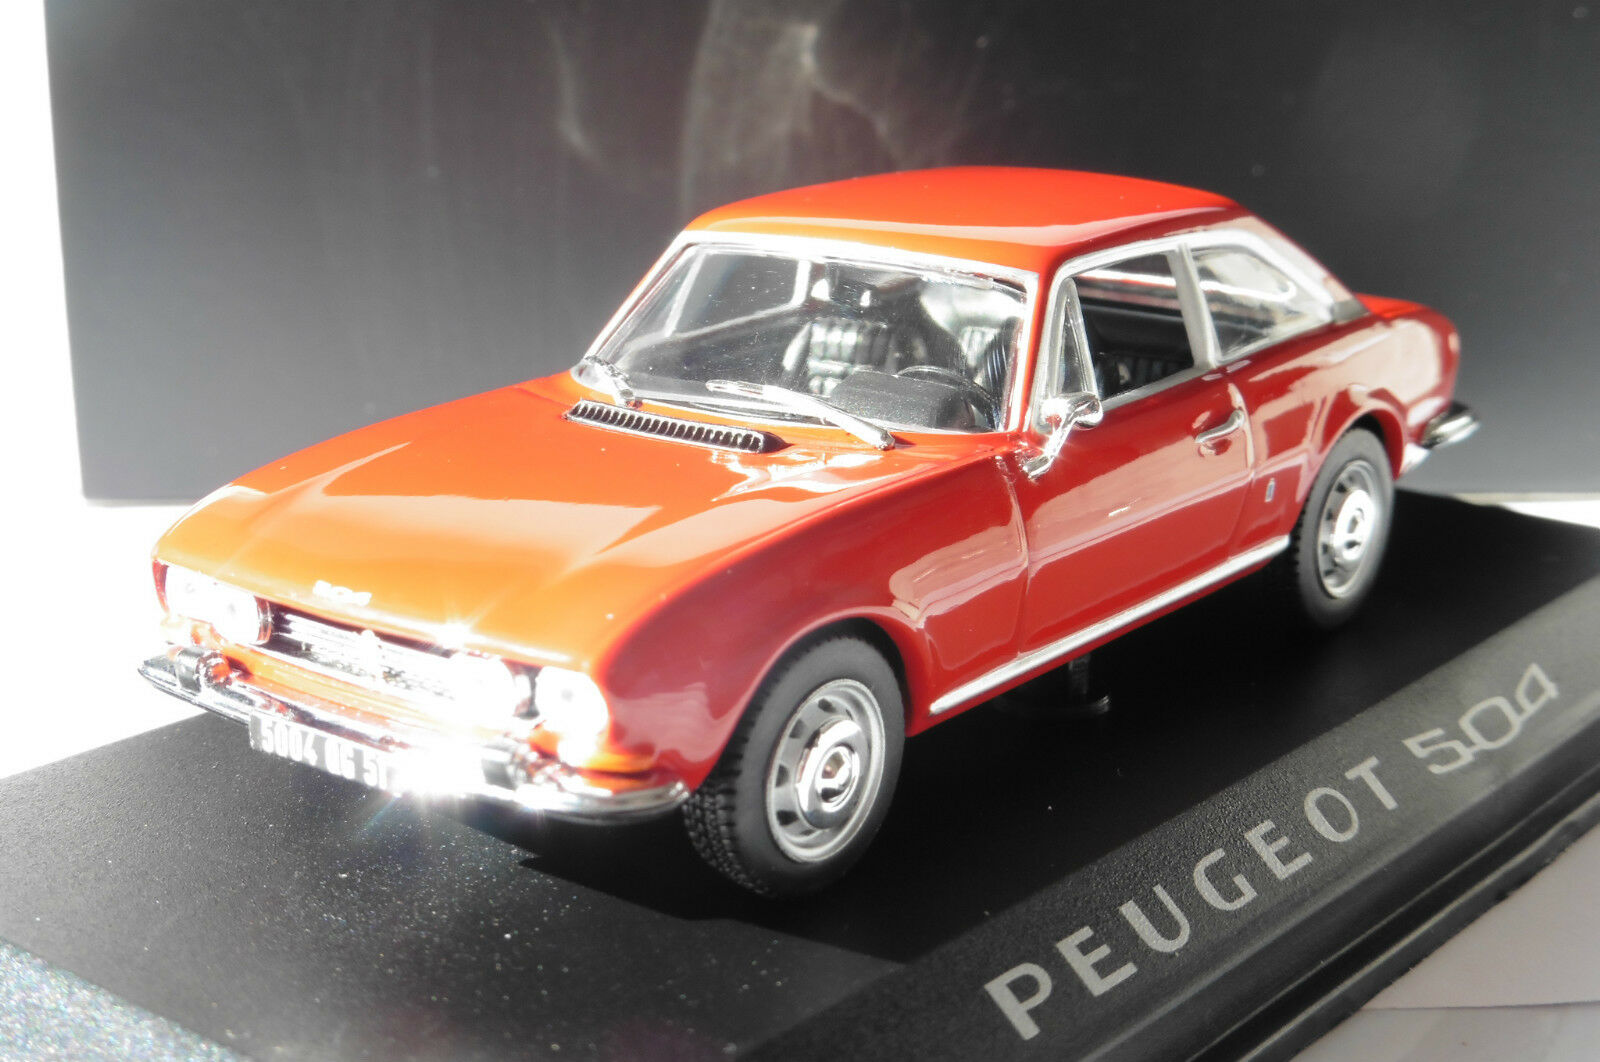 PEUGEOT 504 COUPE 1969 RED NOREV 475416 1 43 red red red ROADSTER DIE CAST